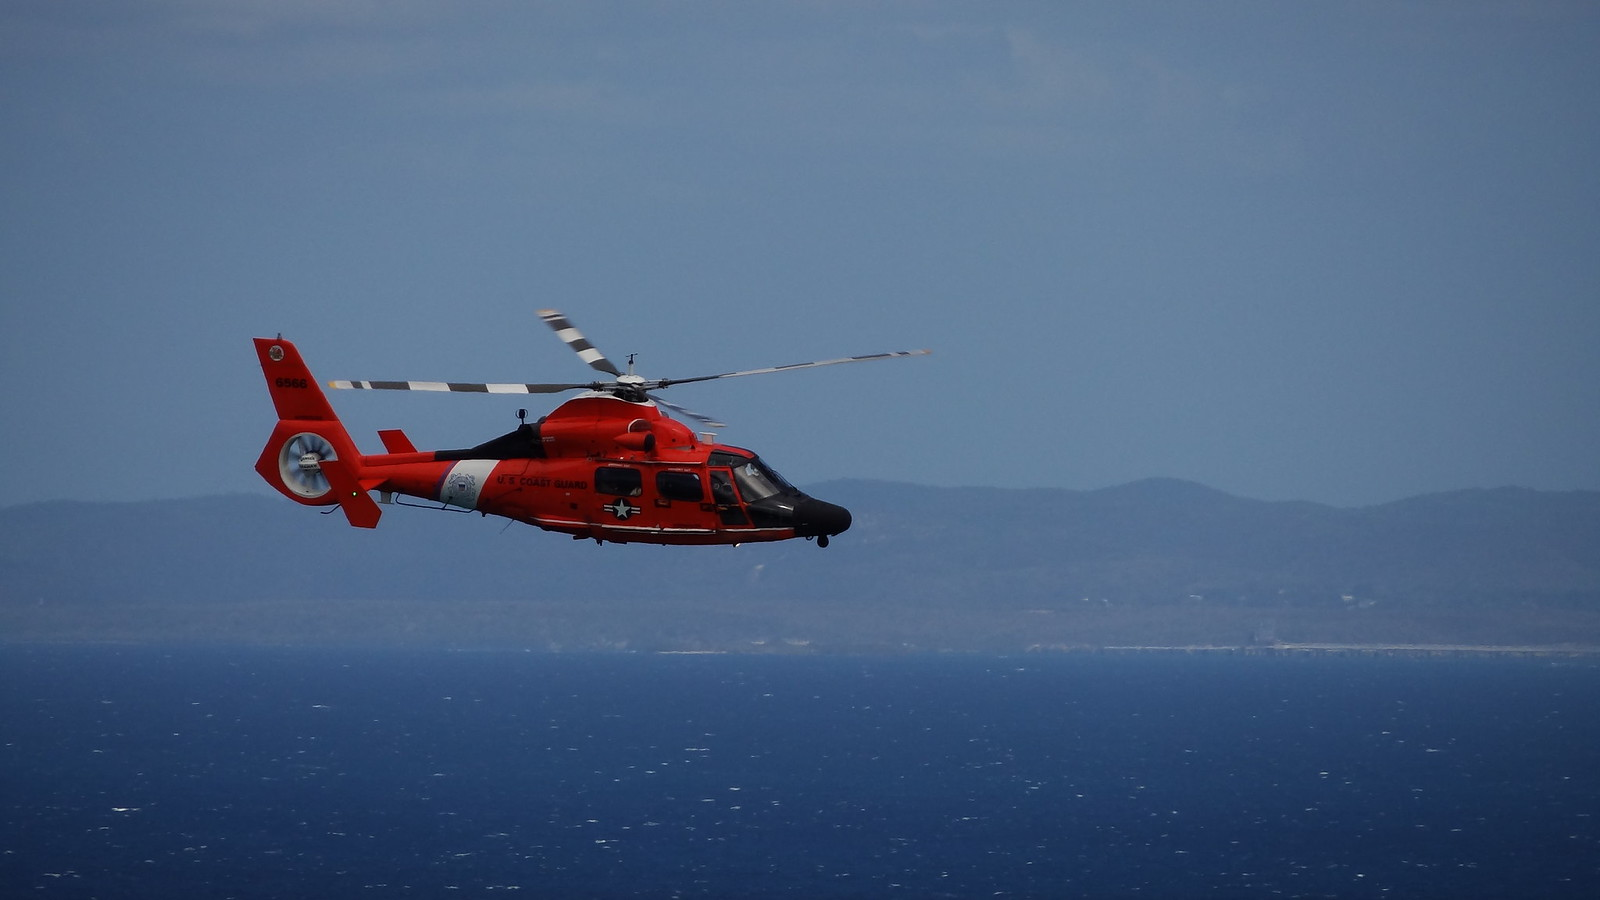 Coast Guard Helicopter  | Marco | Flickr